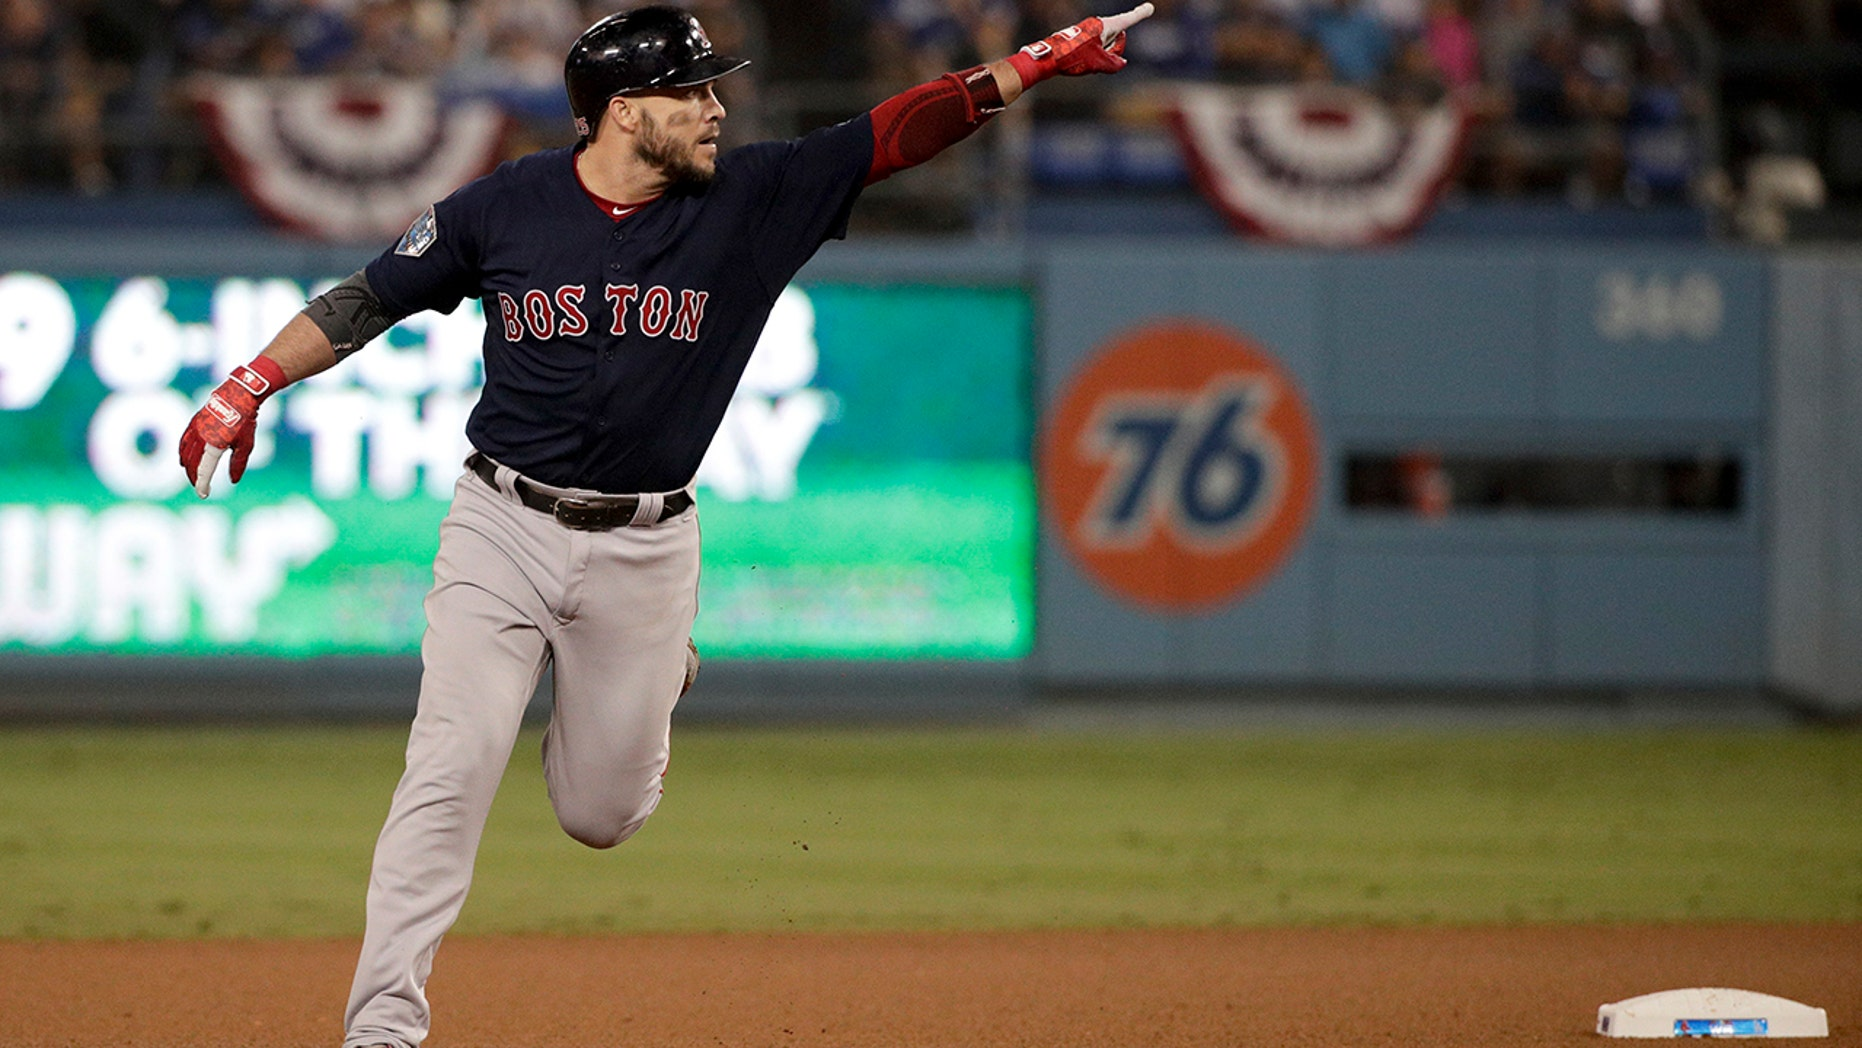 Boston Red Sox's Steve Pearce celebrates after his home run against the Los Angeles Dodgers during the eighth inning in Game 4 of the World Series baseball game on Saturday, Oct. 27, 2018, in Los Angeles. (Associated Press)